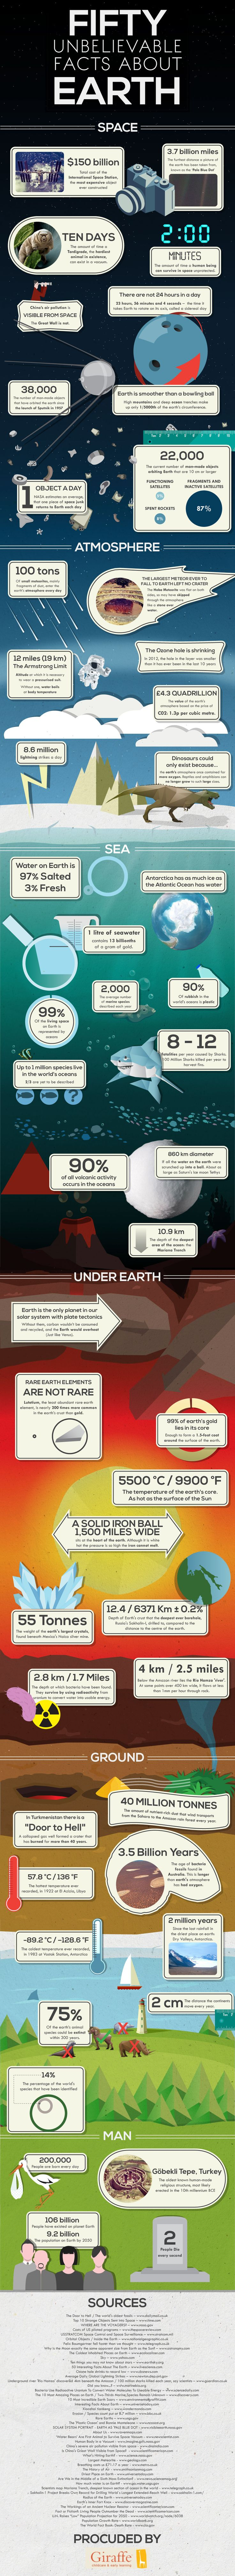 A collection of amazing facts about Earth, ranging from space right down to the Earth's core.